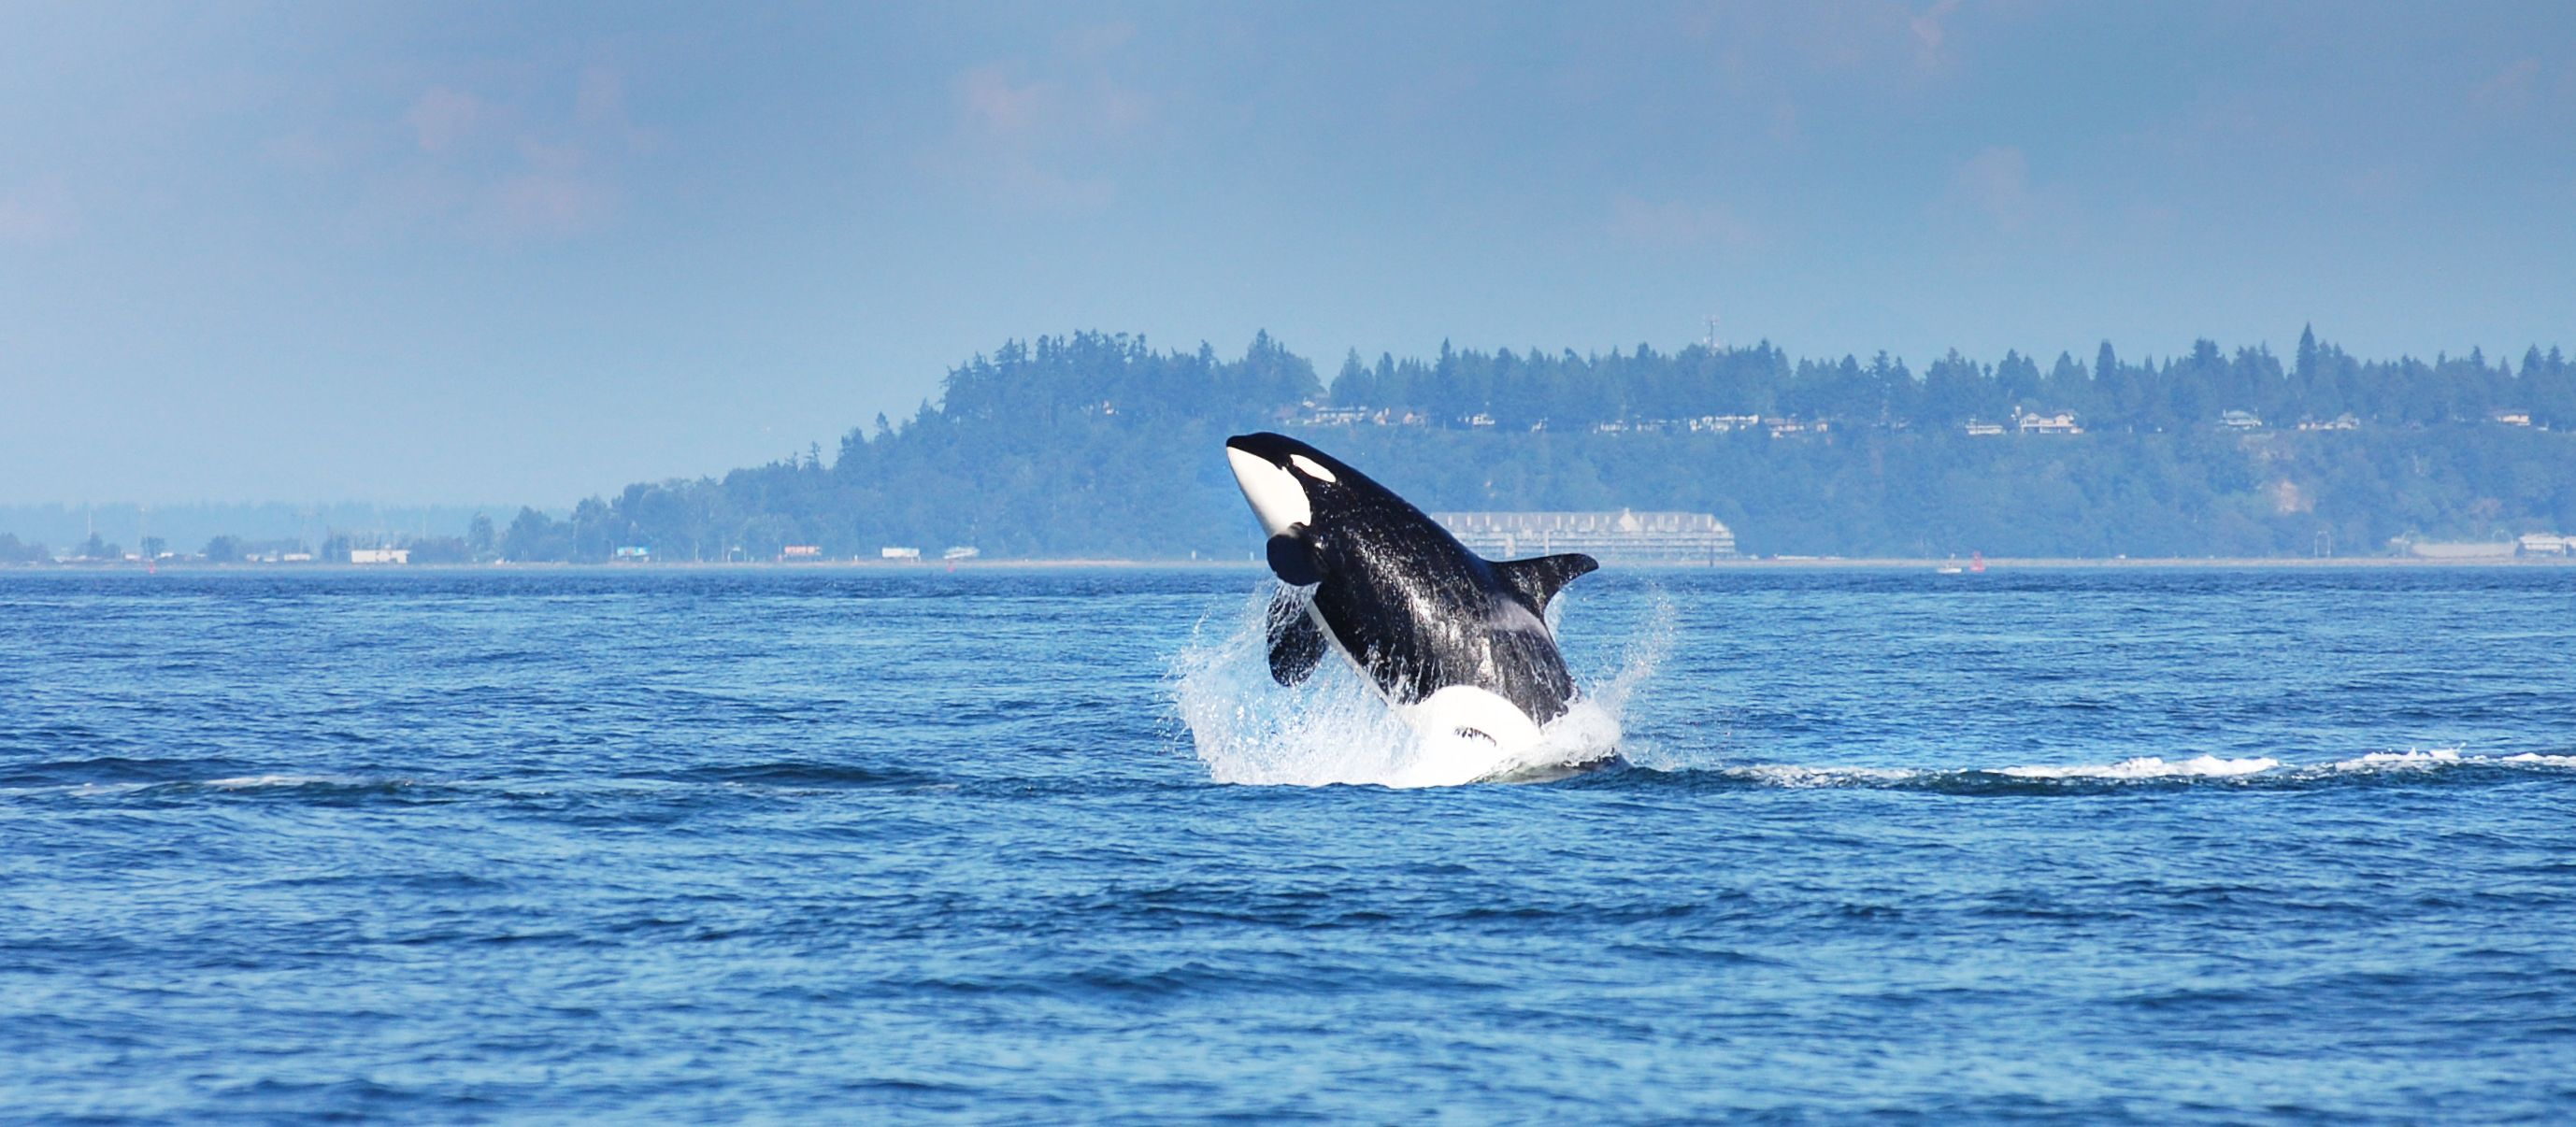 Whale watching in Vancouver, British Columbia